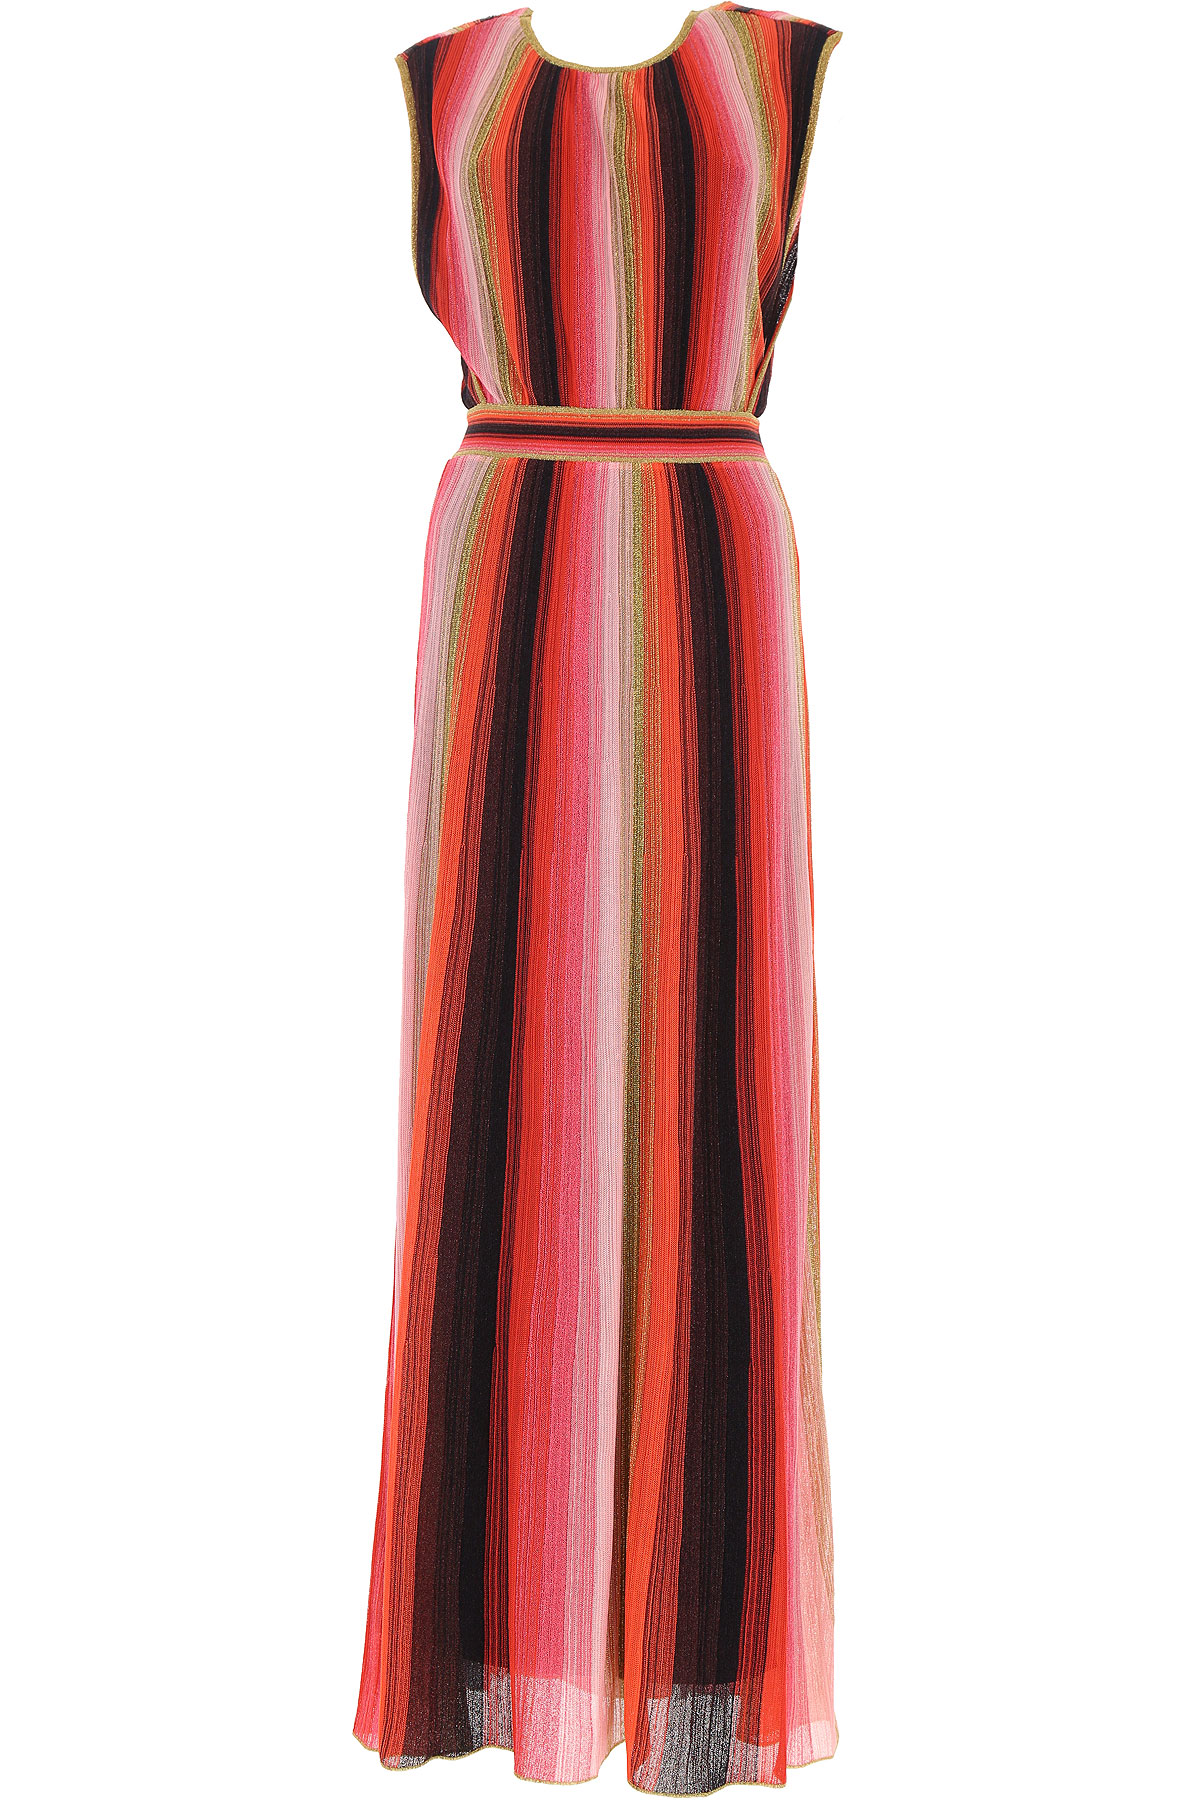 Missoni Dress for Women, Evening Cocktail Party On Sale, Red, Viscose, 2019, 2 4